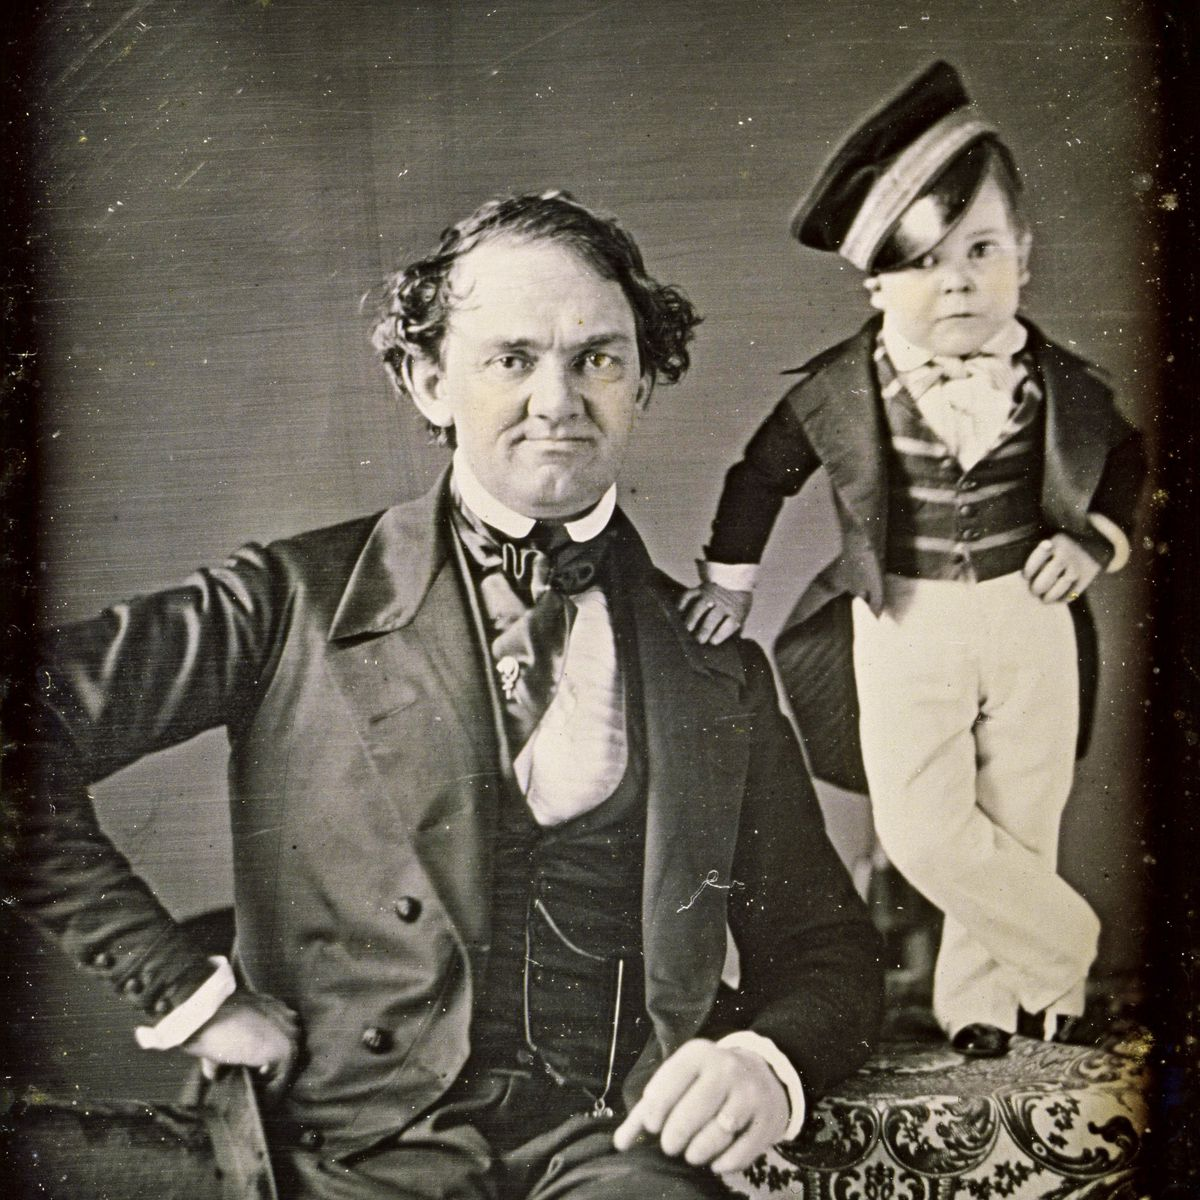 Showman P.T. Barnum leans an elbow on a table, atop which stands performer General Tom Thumb, circa 1850.